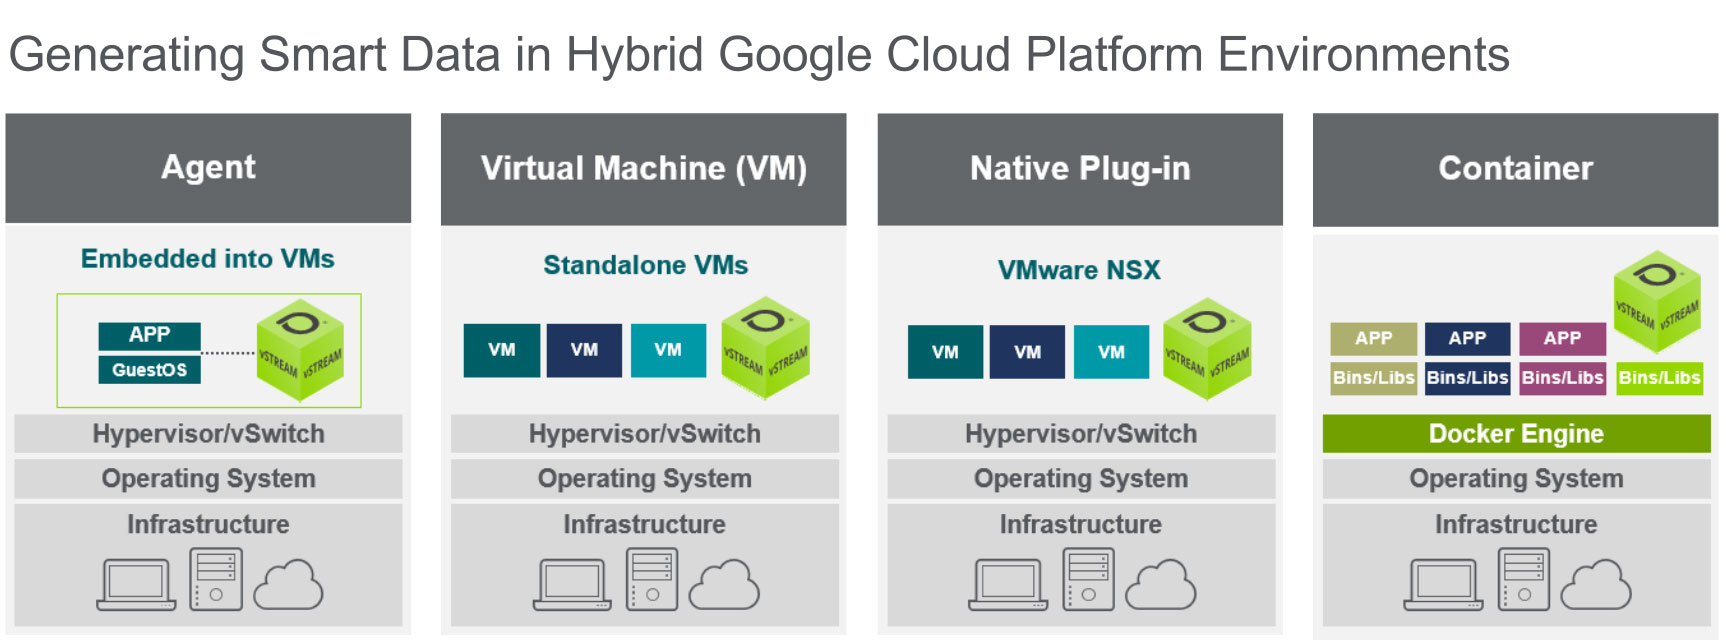 Generating Smart Data in Hybrid Google Cloud Platform Environments